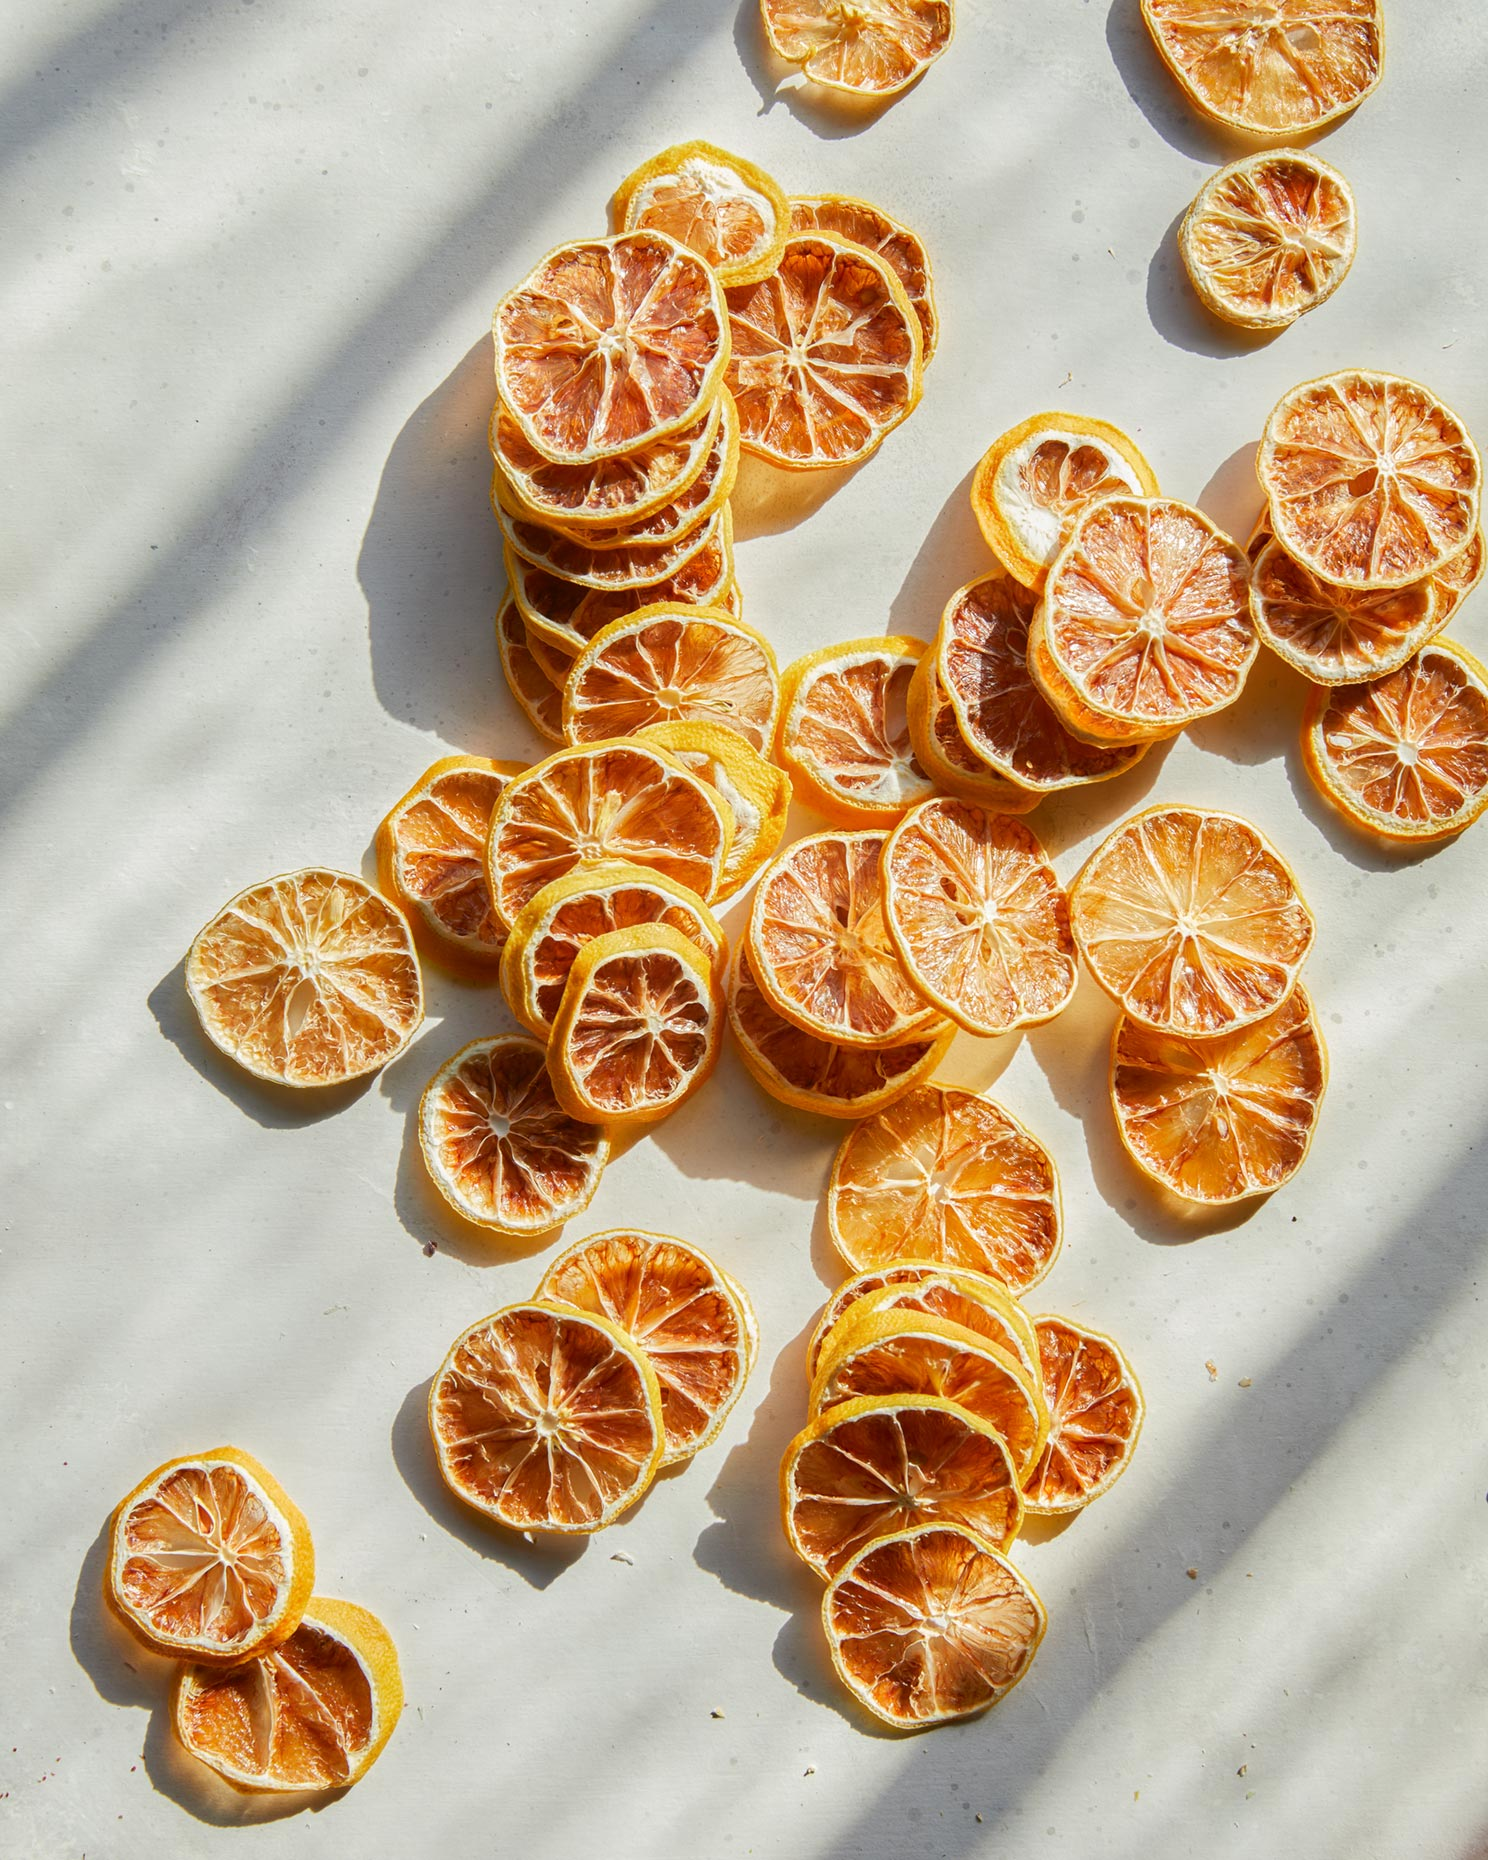 dehydrated_lemon_slices